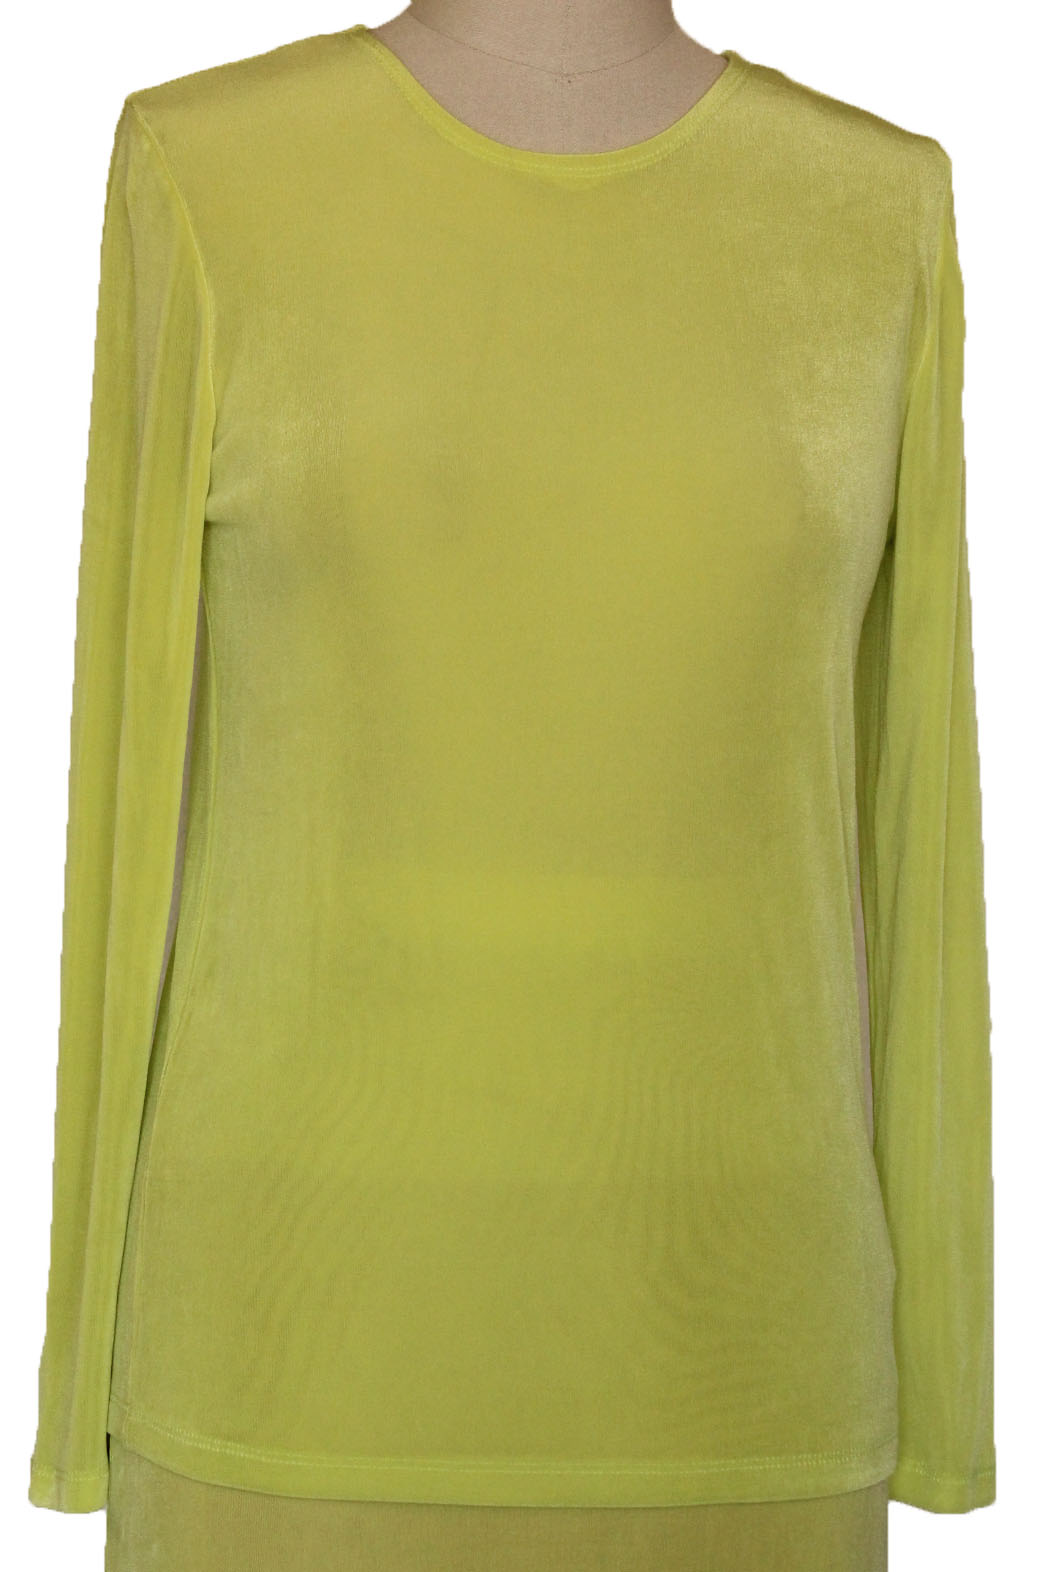 Lime Slinky Jewel Neck Tunic Long Sleeve Top (016-1)